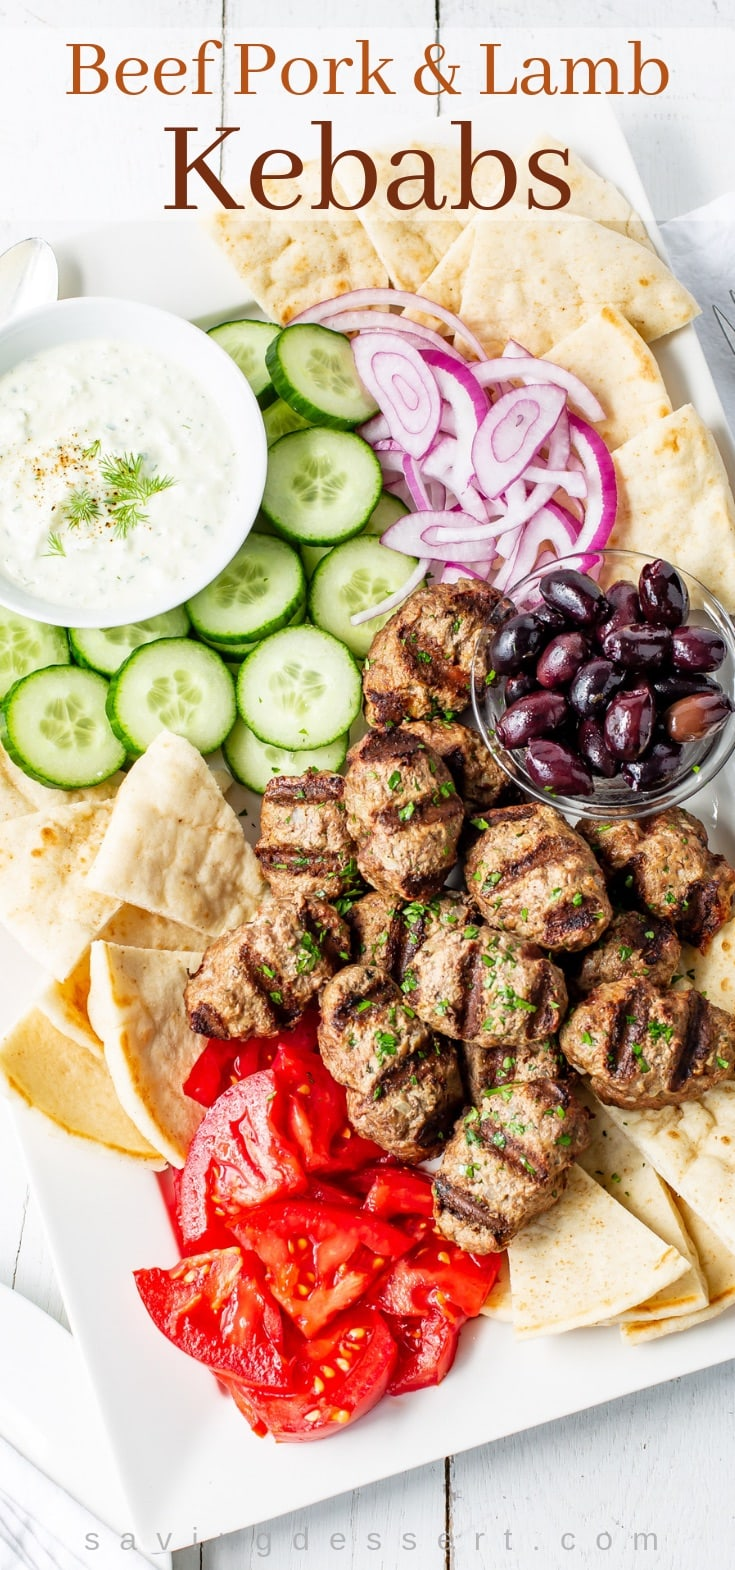 A tray with grilled lamb kebabs, tomatoes, cucumber, onion, pita wedges and cucumber-yogurt sauce